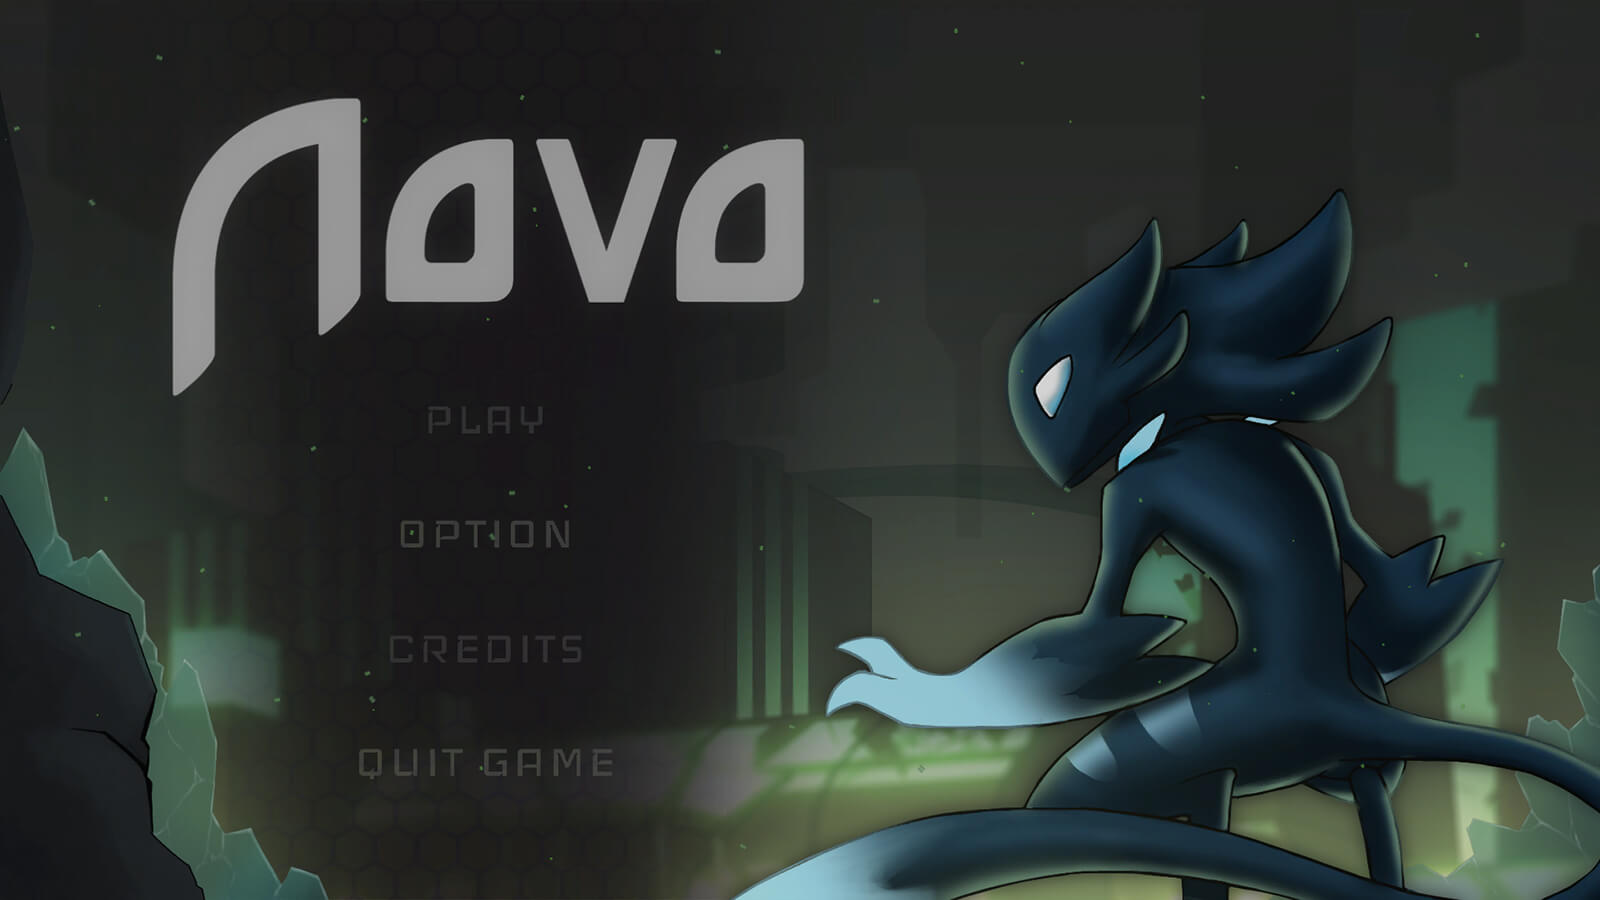 Title screen for the game Novo depicting a sleek, black alien crouching in the foreground of a futuristic city.